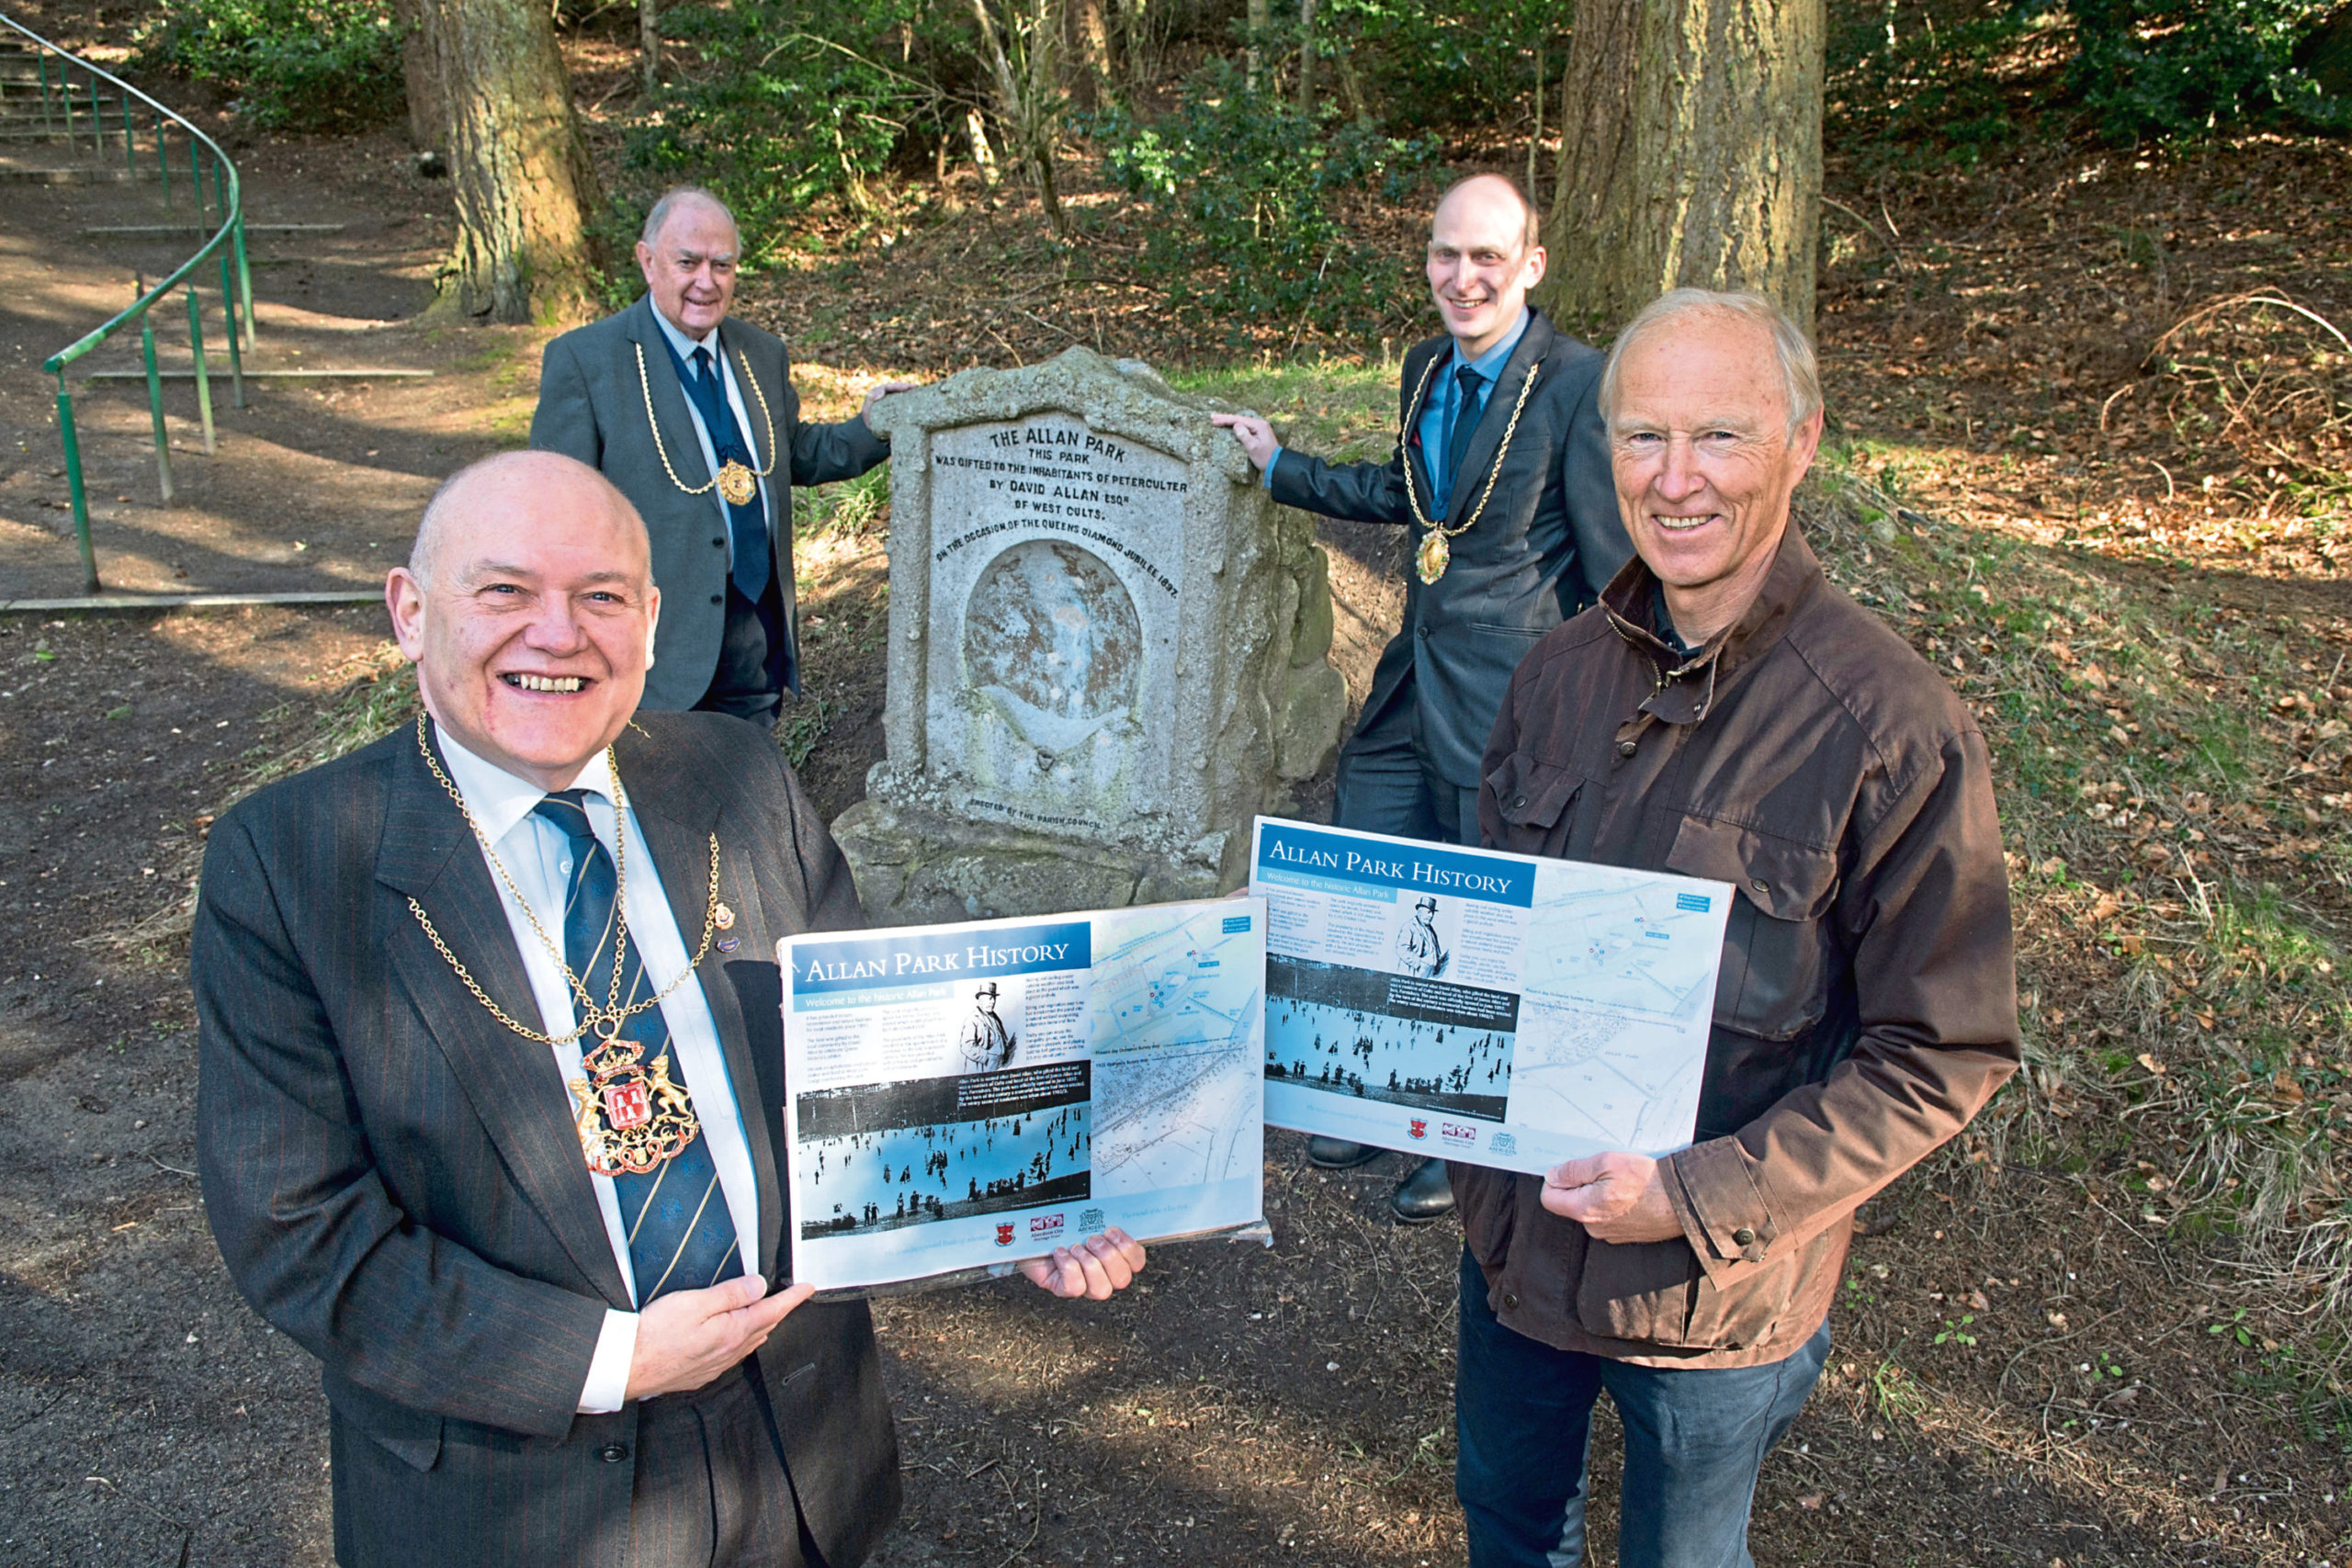 From left, Lord Provost Barney Crockett, Mervyn Donald and Kevin Bowie, of Incorporated Trades, and Iain Clark, Friends of Allan Park